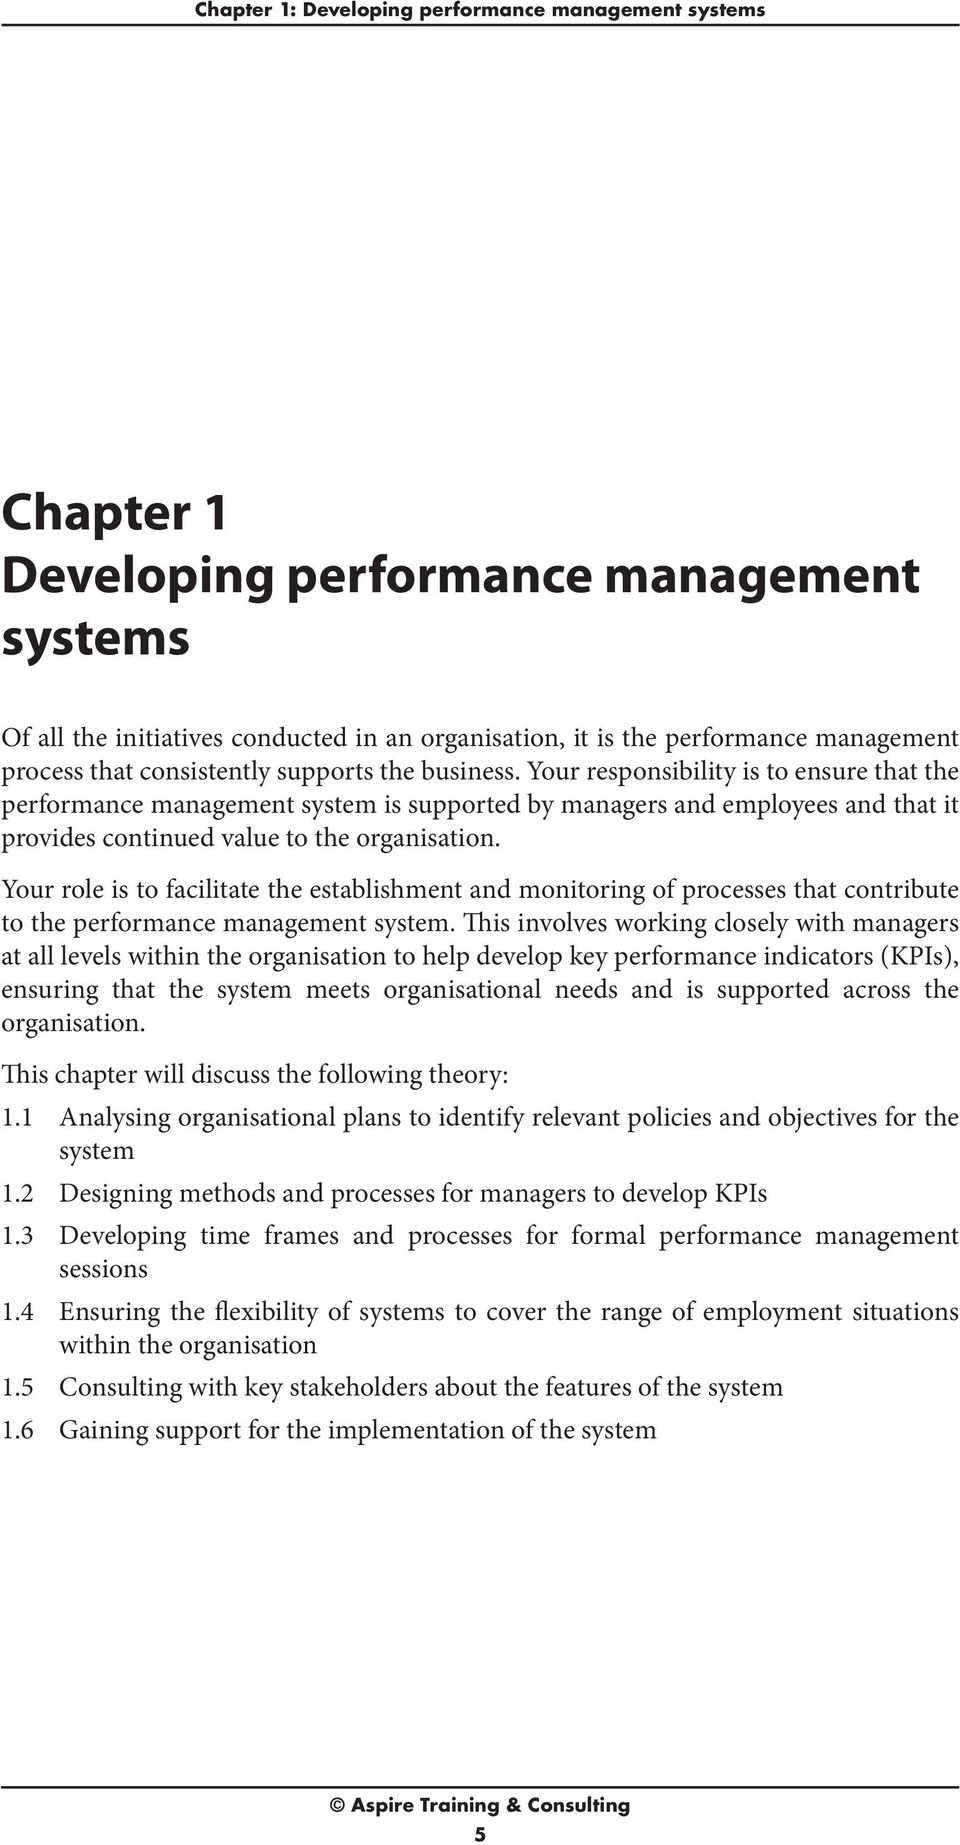 Your responsibility is to ensure that the performance management system is supported by managers and employees and that it provides continued value to the organisation.